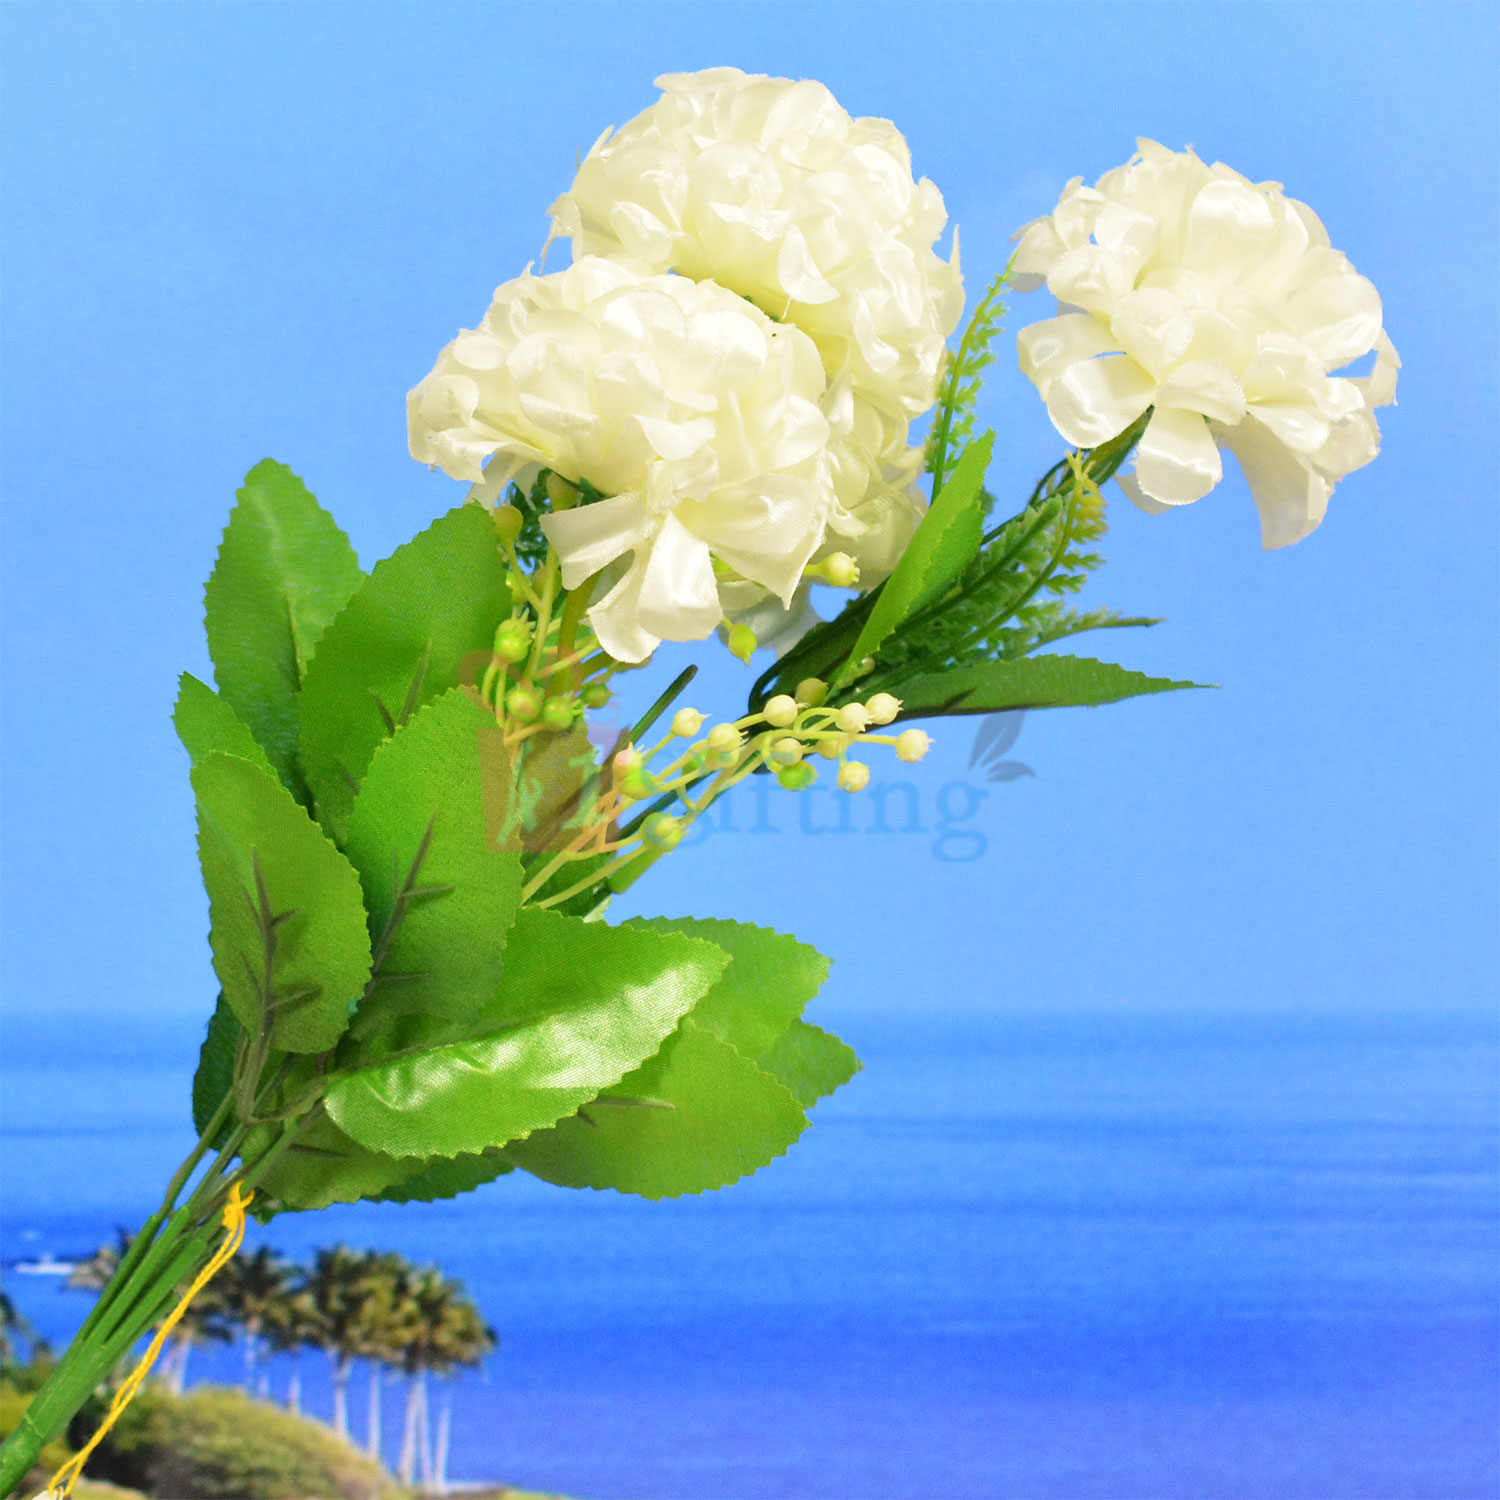 White Flower with Buds Decorative Artificial Plant for Pot